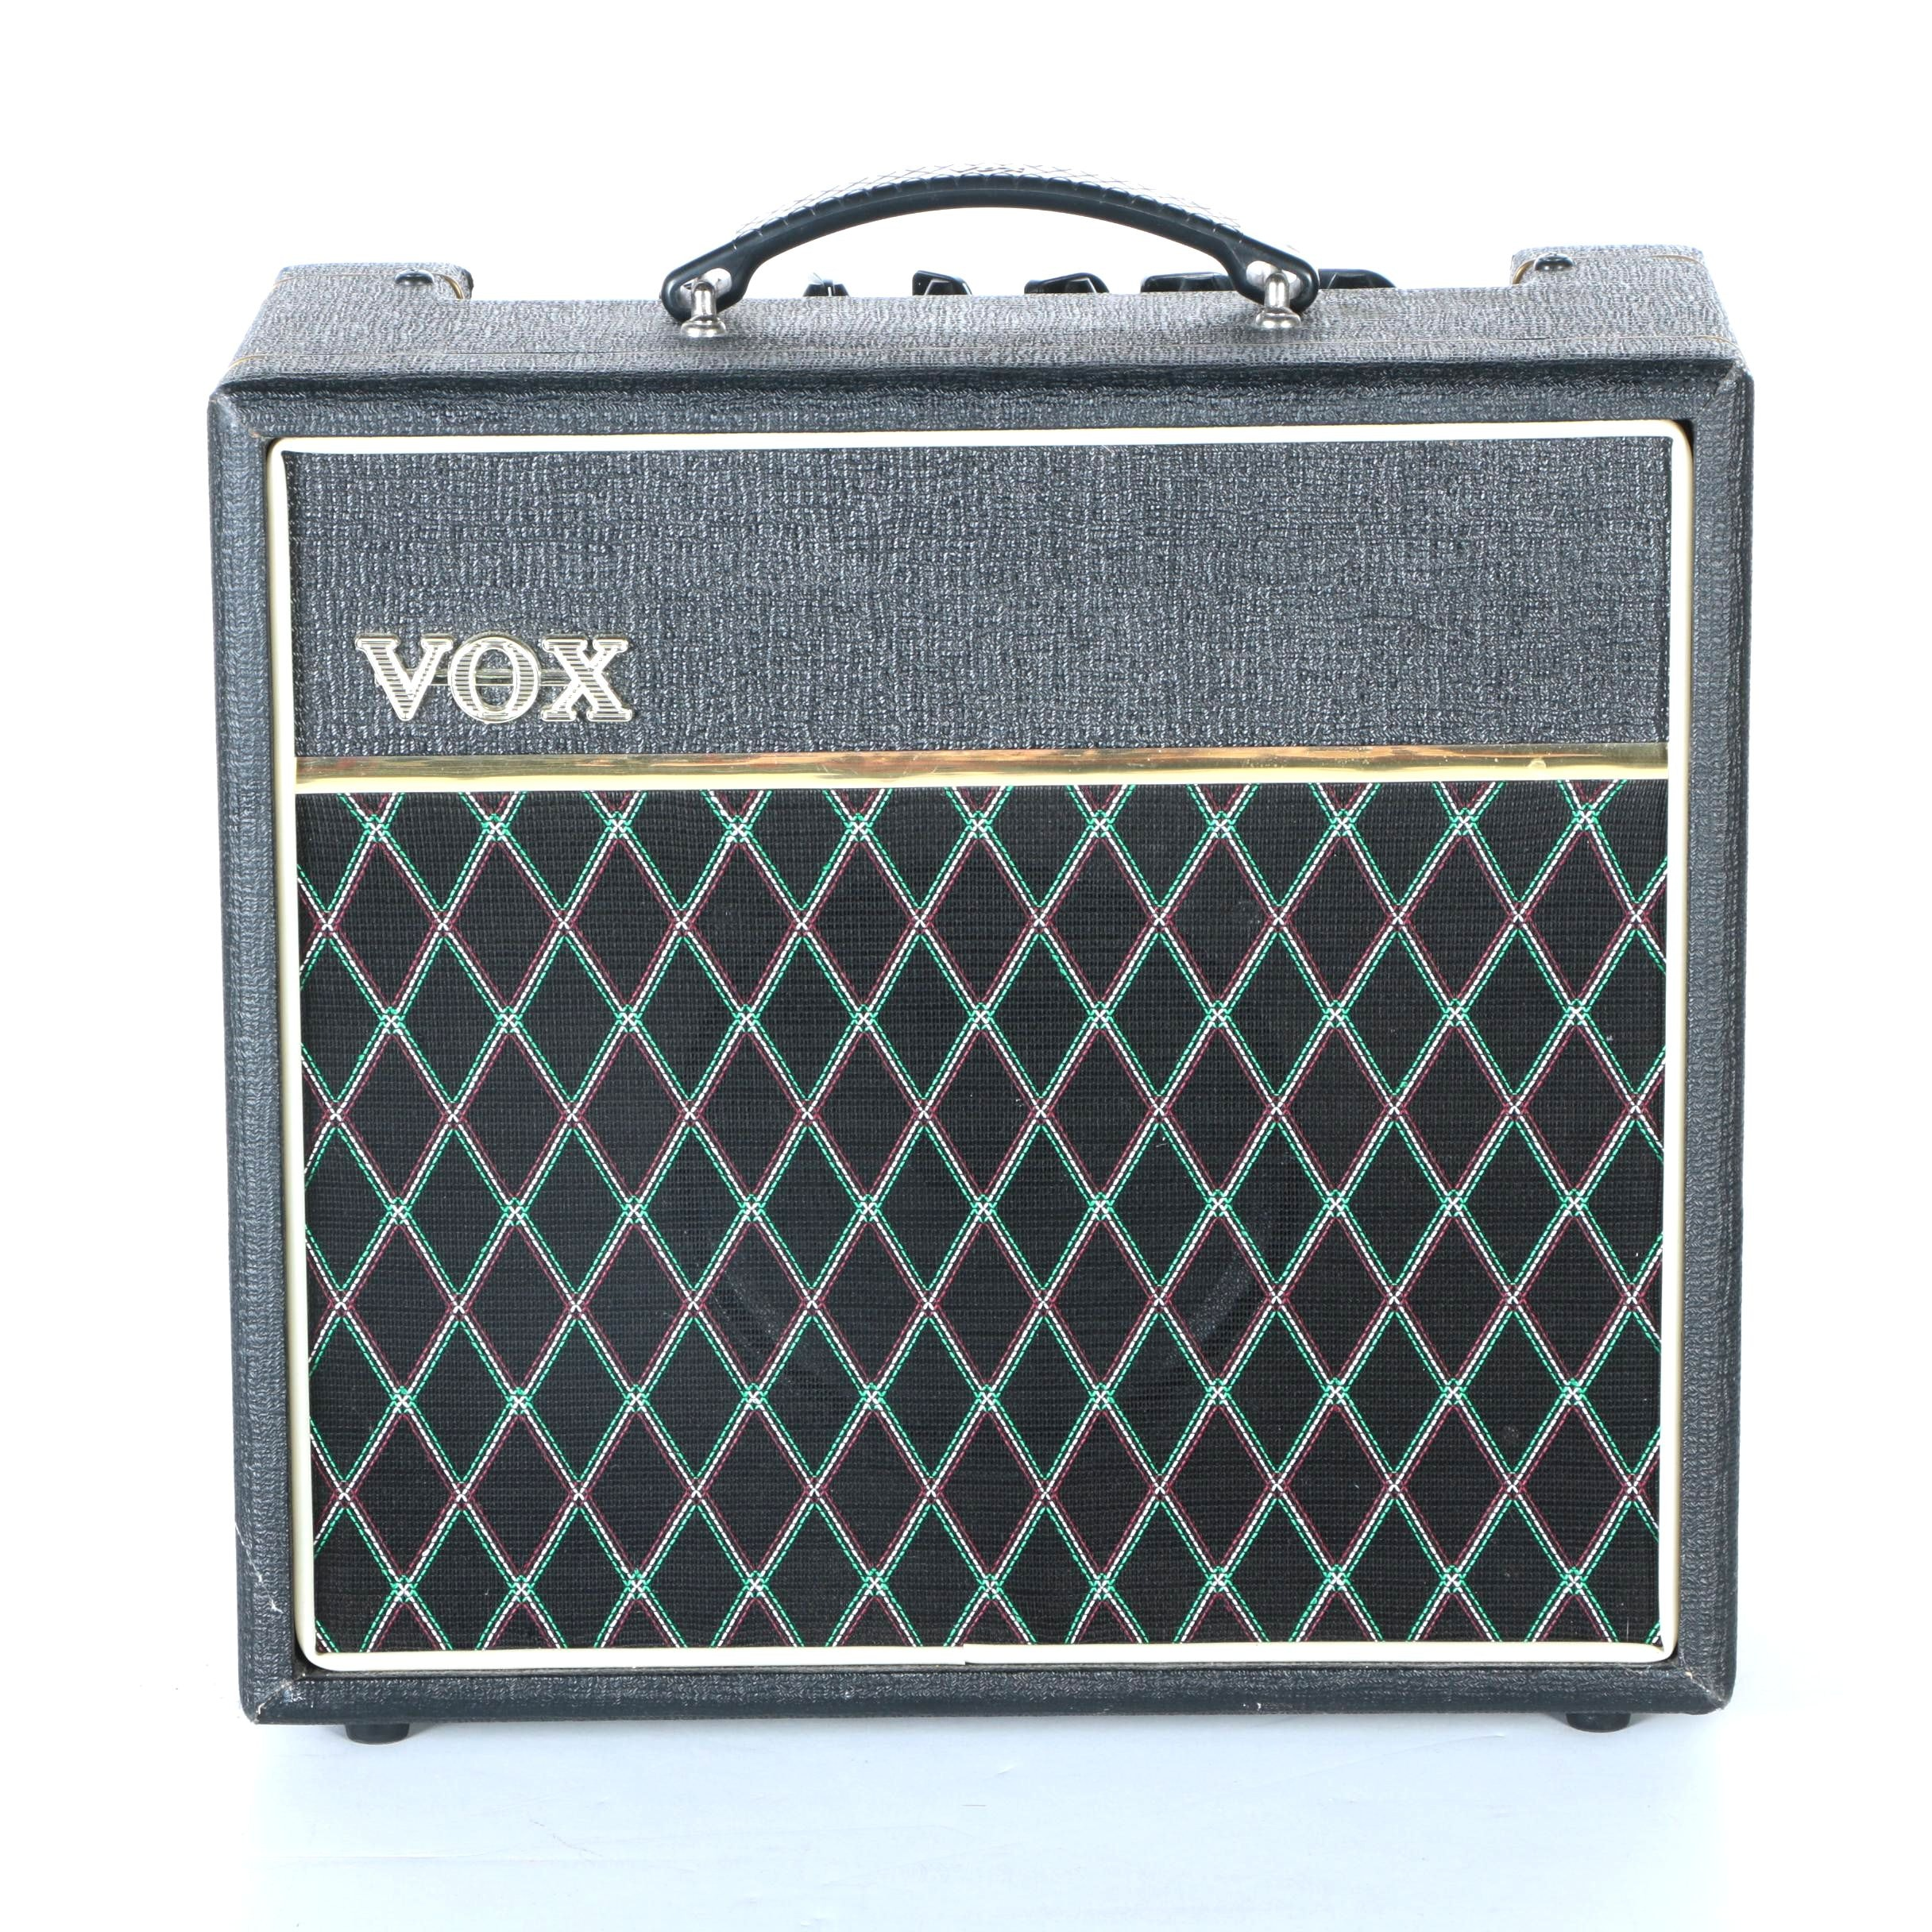 Vox Pathfinder 15 Practice Amplifier